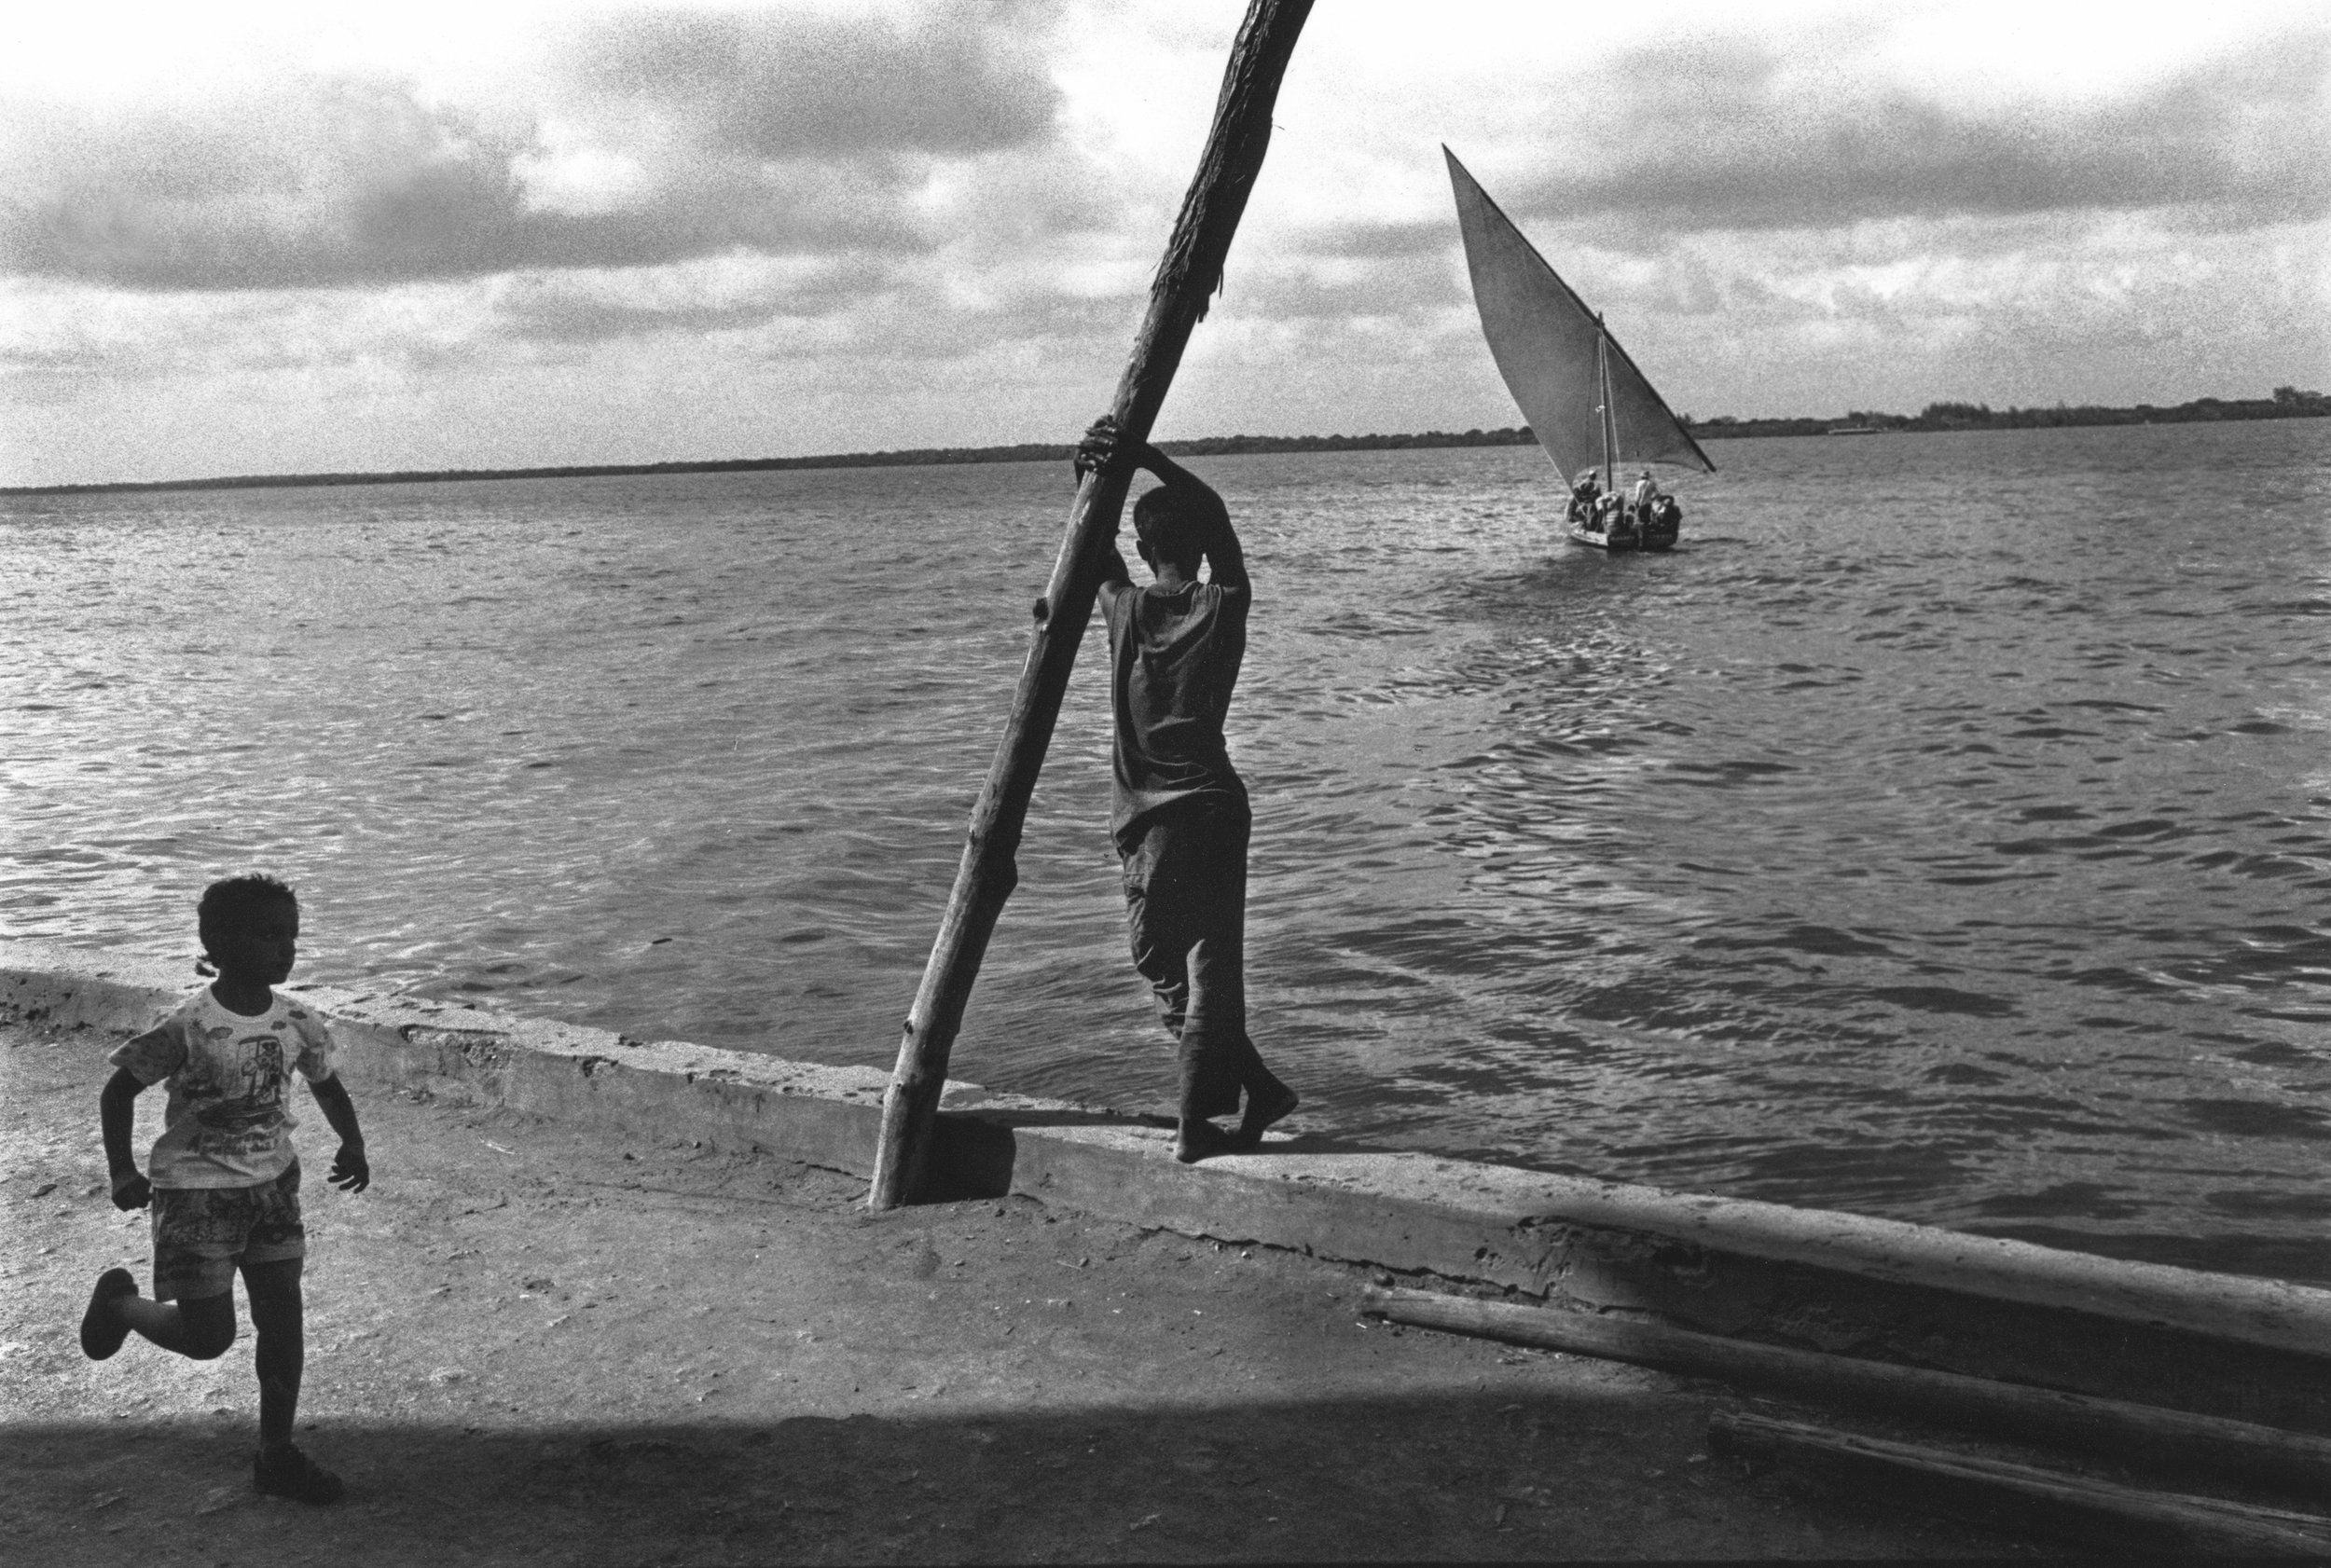 Seaward bound. Coast of Mombasa, Kenya. 1999